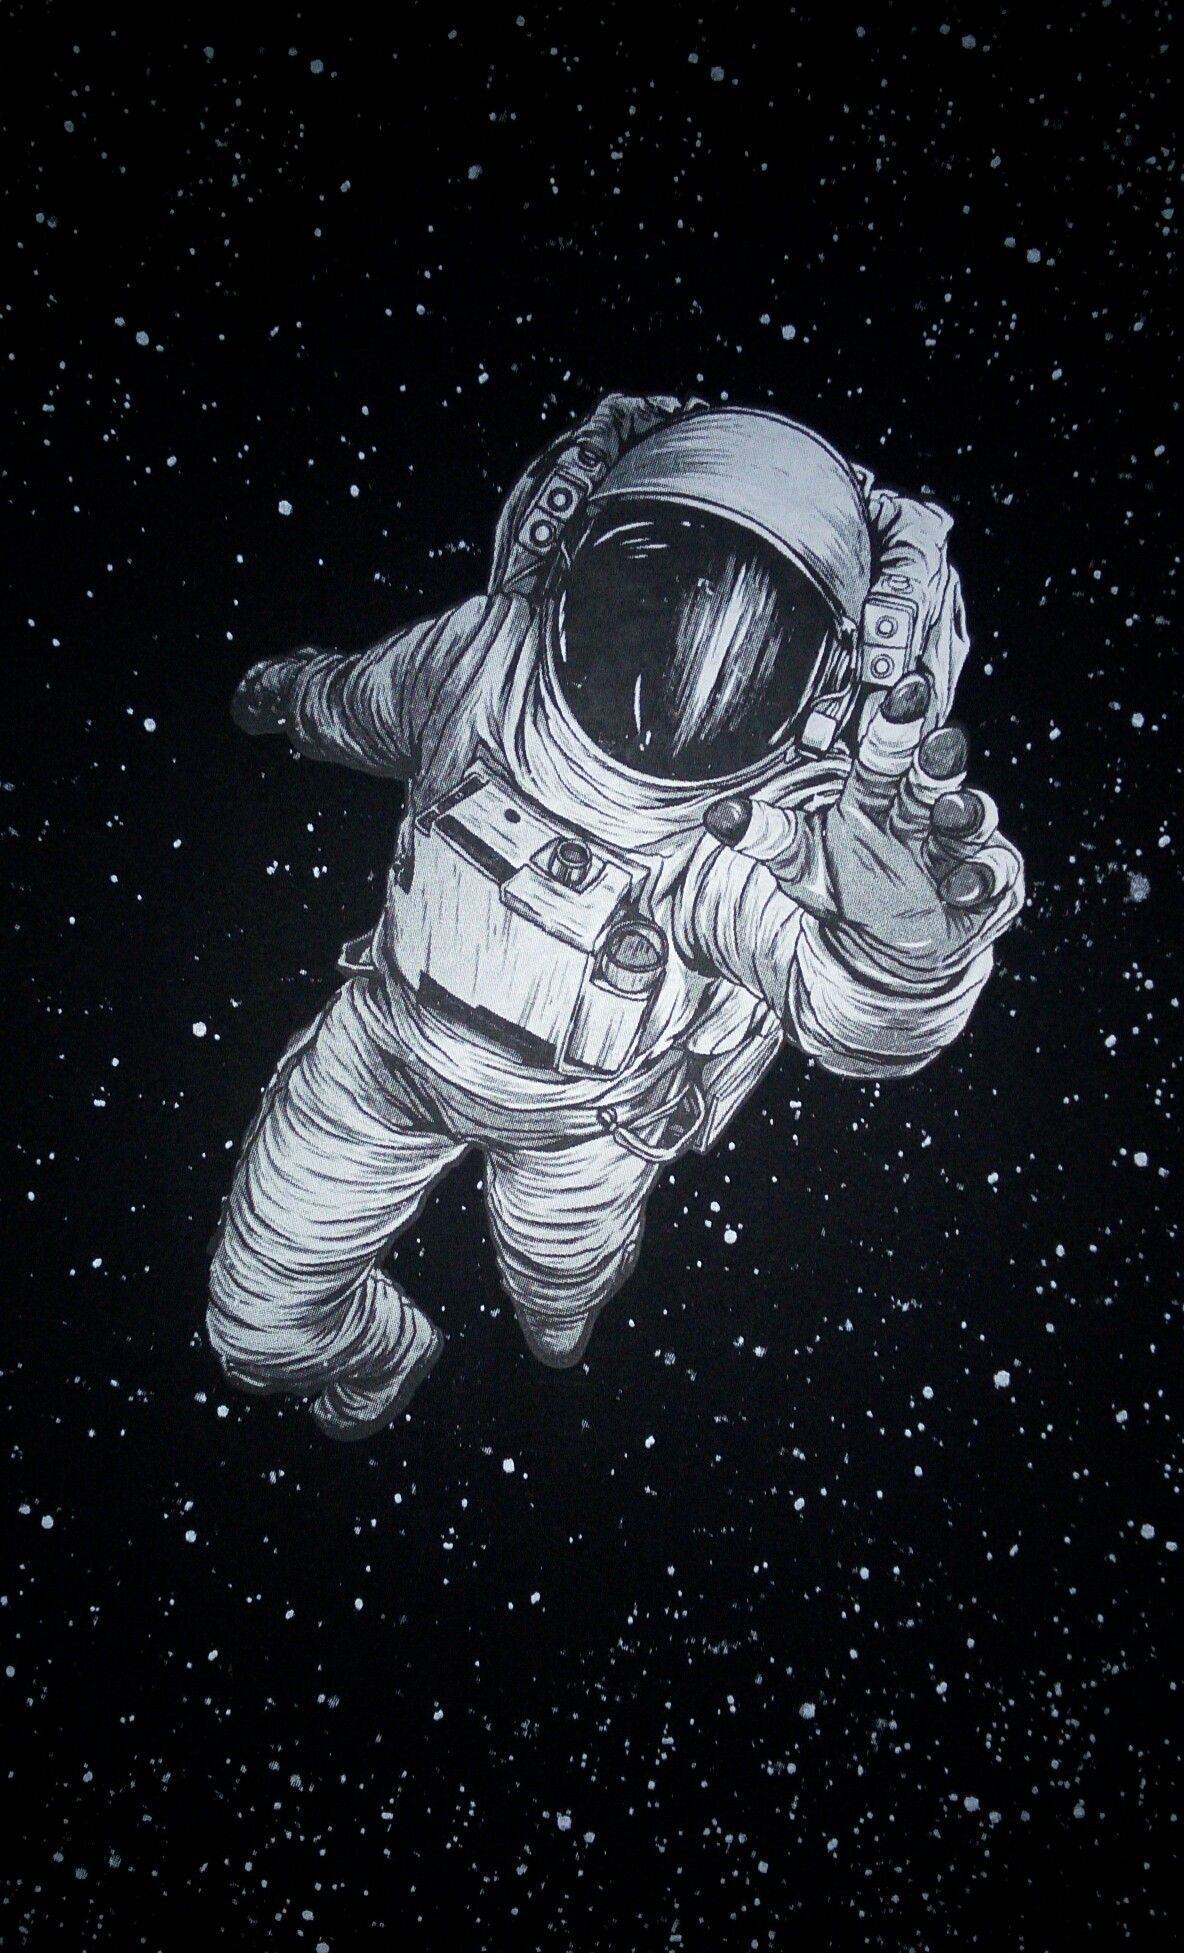 Pin By Meaghan Ellig On Wallpapers With Images Astronaut